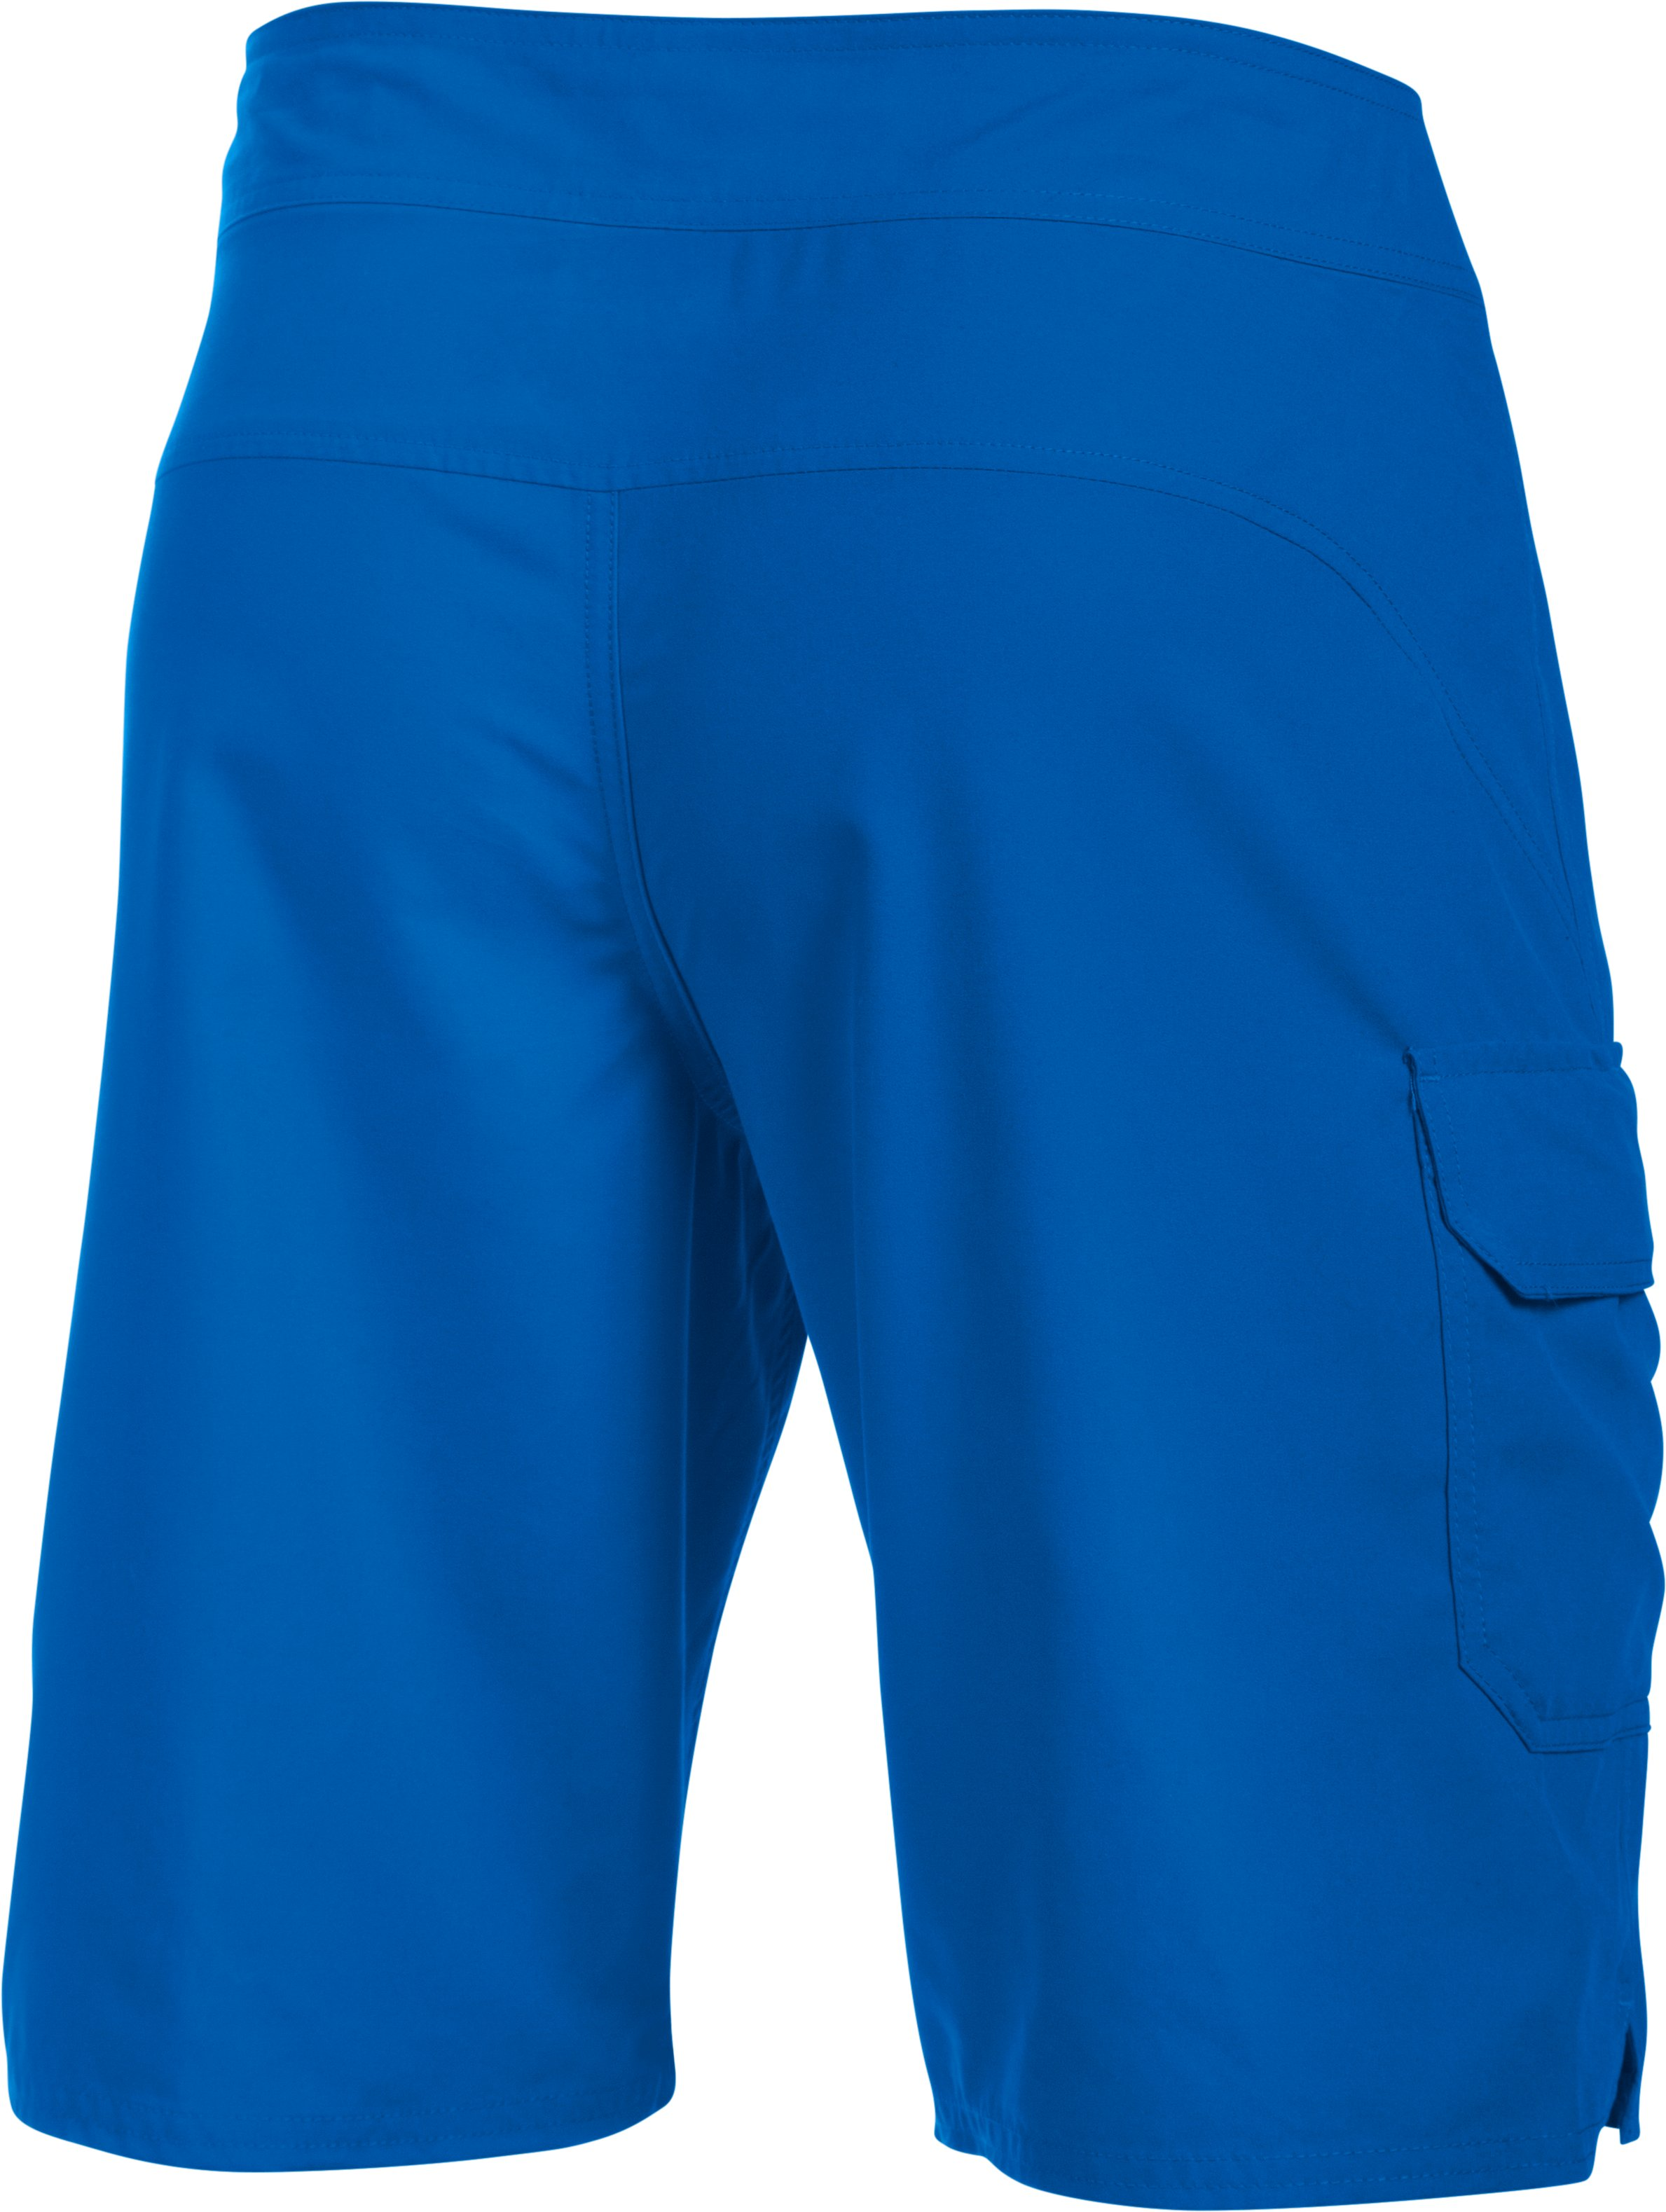 Men's UA HIIT, ULTRA BLUE